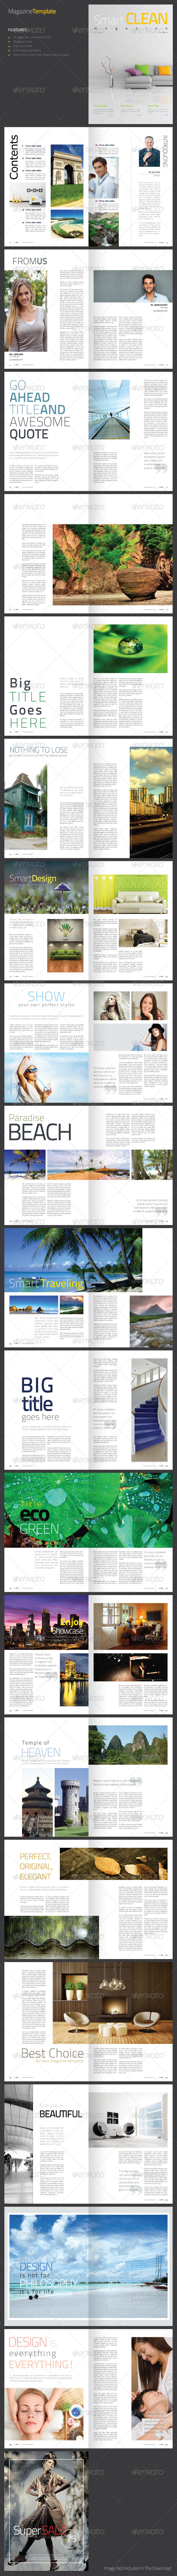 GraphicRiver Smart Clean Magazine Template 4661478